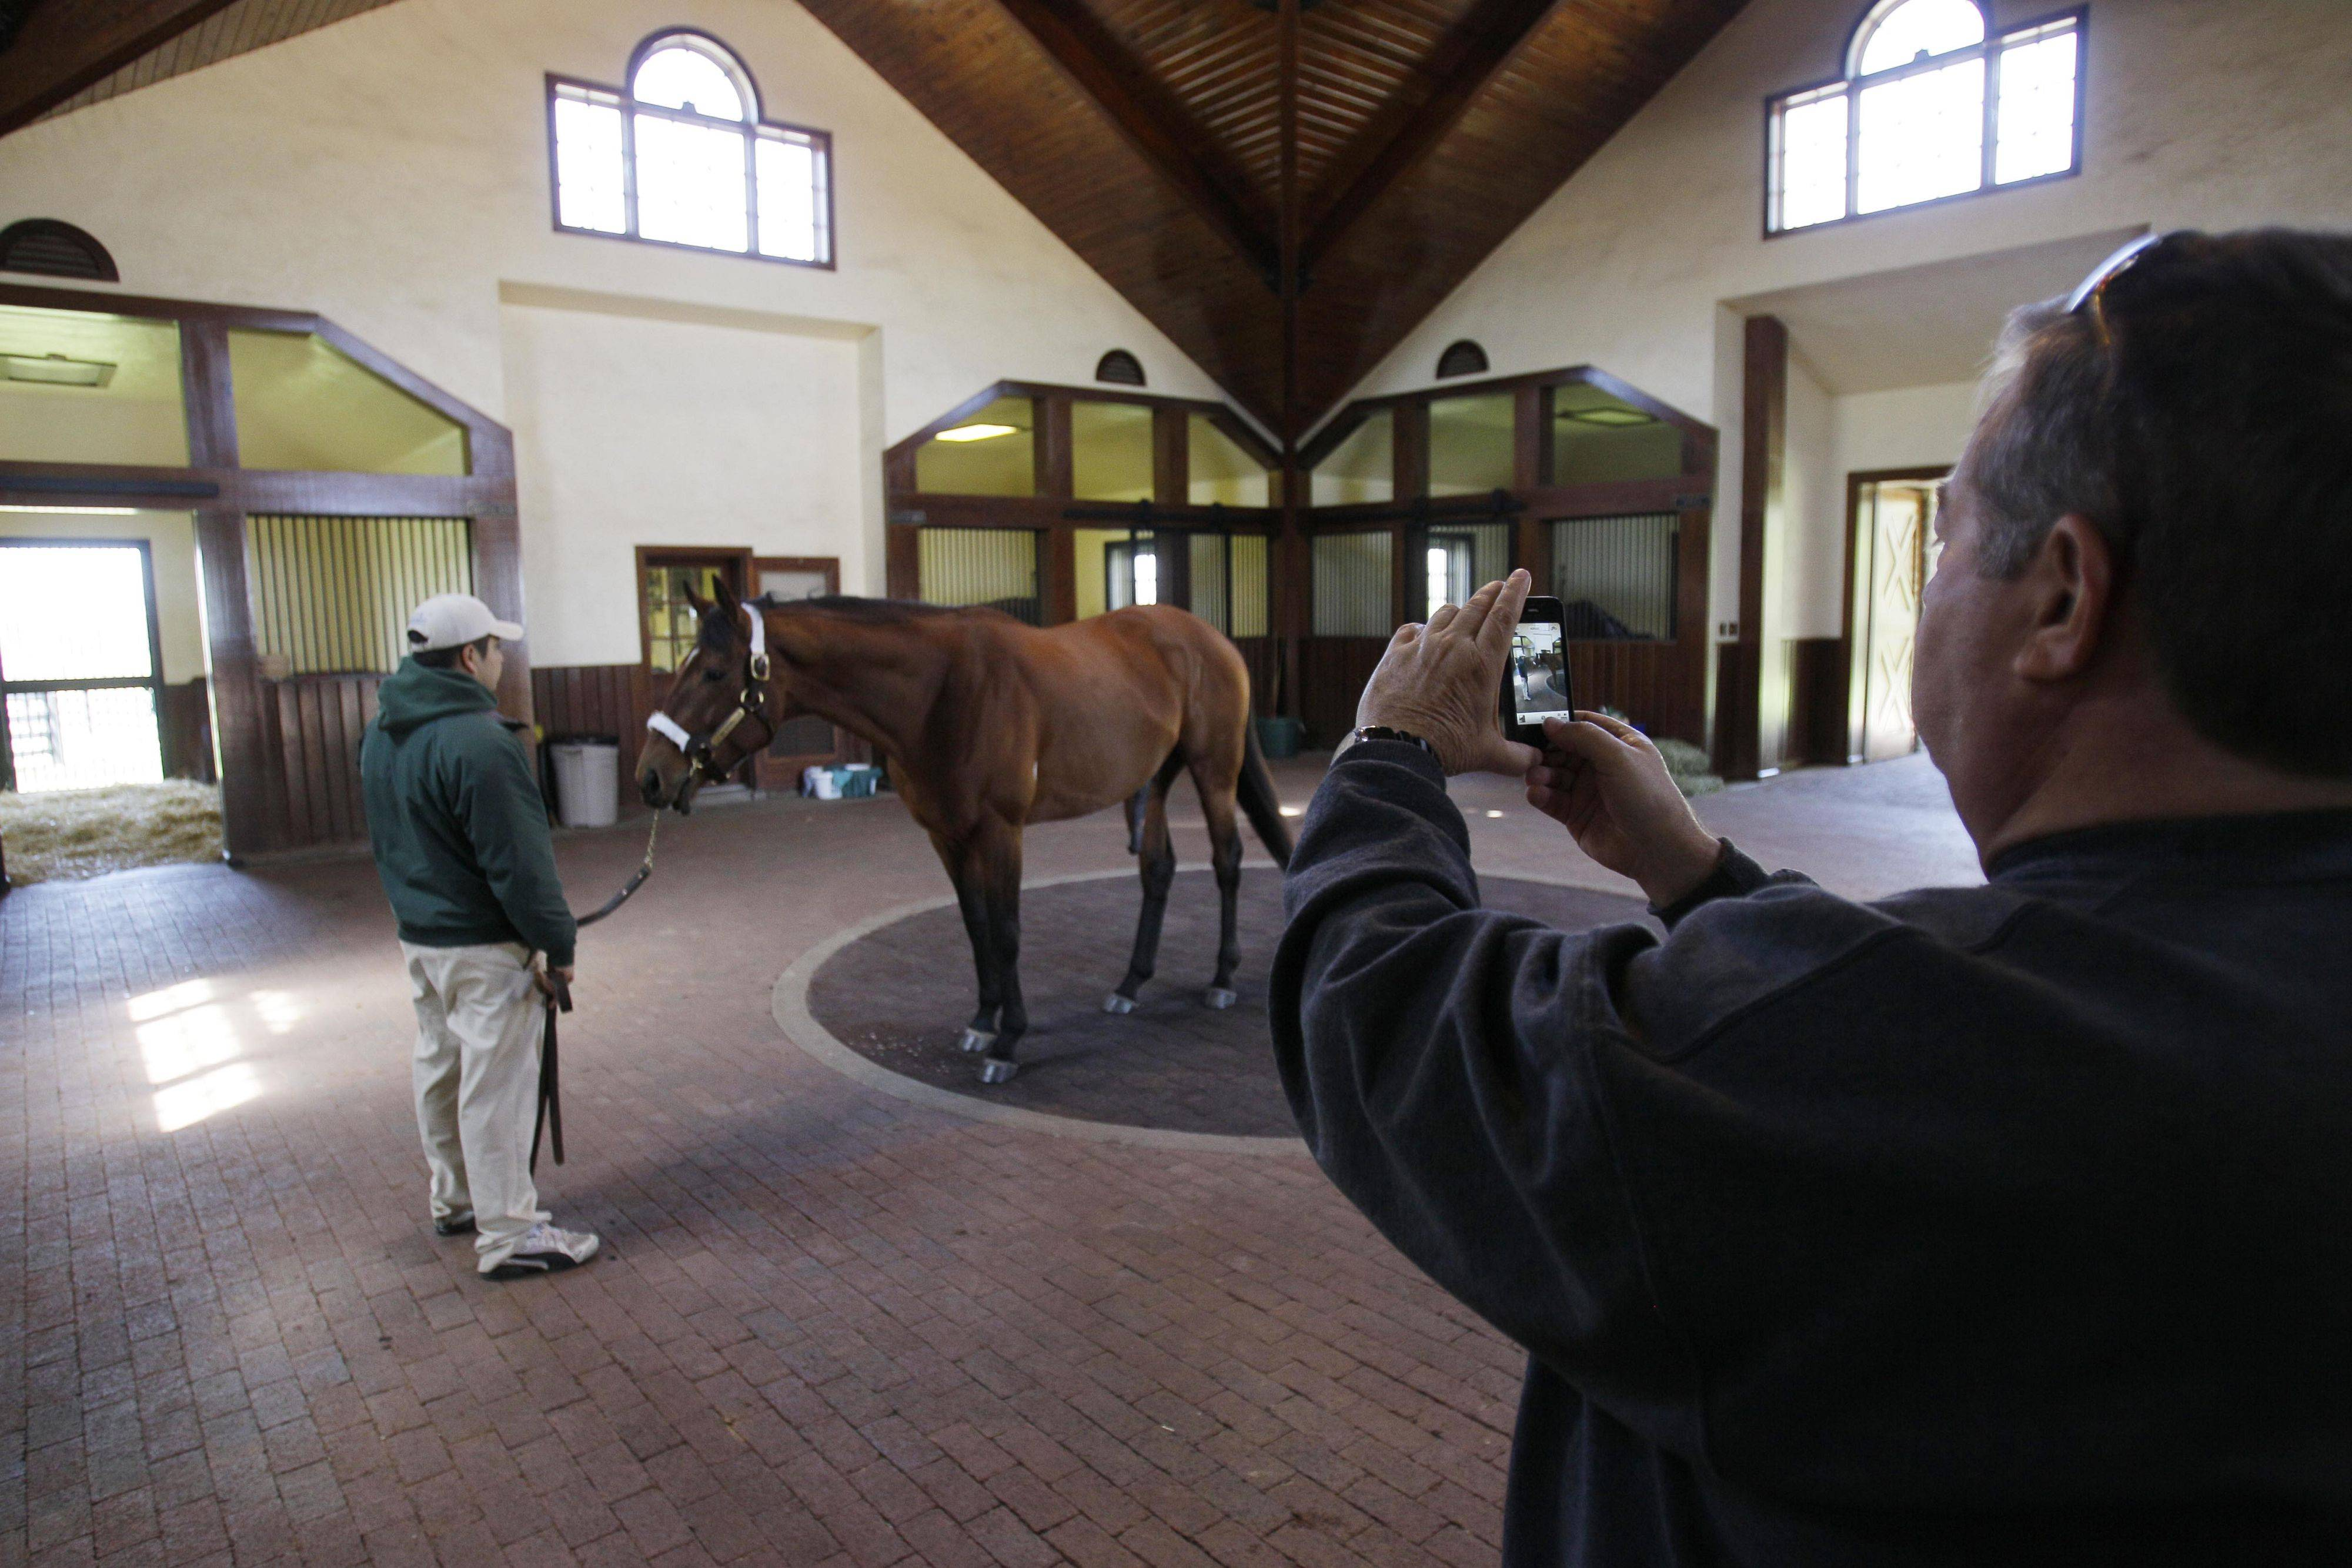 Mike Hays of Little Rock, Ark., photographs Big Brown during a tour of Three Chimneys Farm in Midway, Ky.